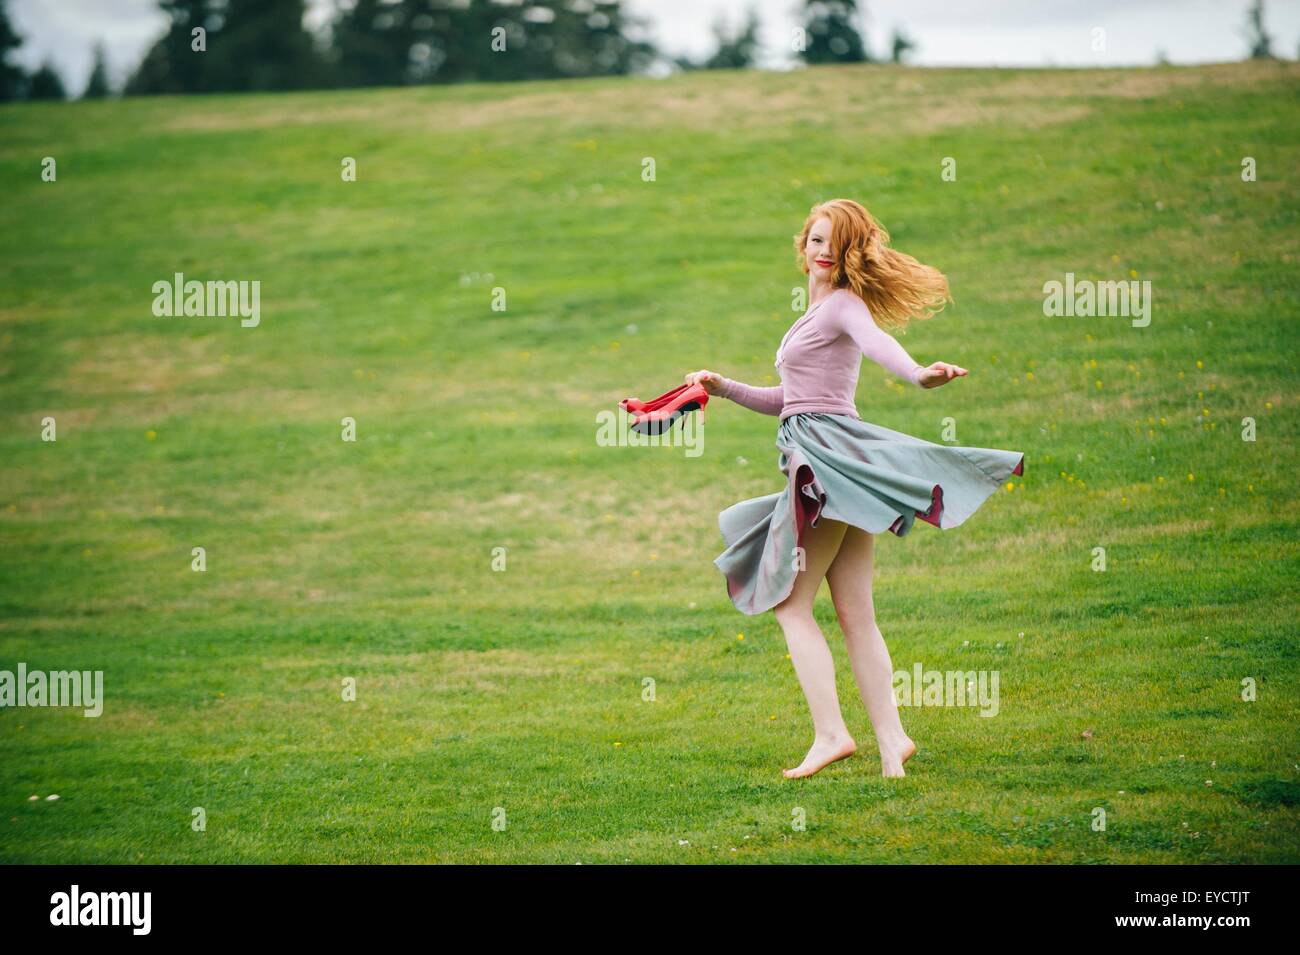 Portrait of young woman dancing in park holding red high heels - Stock Image